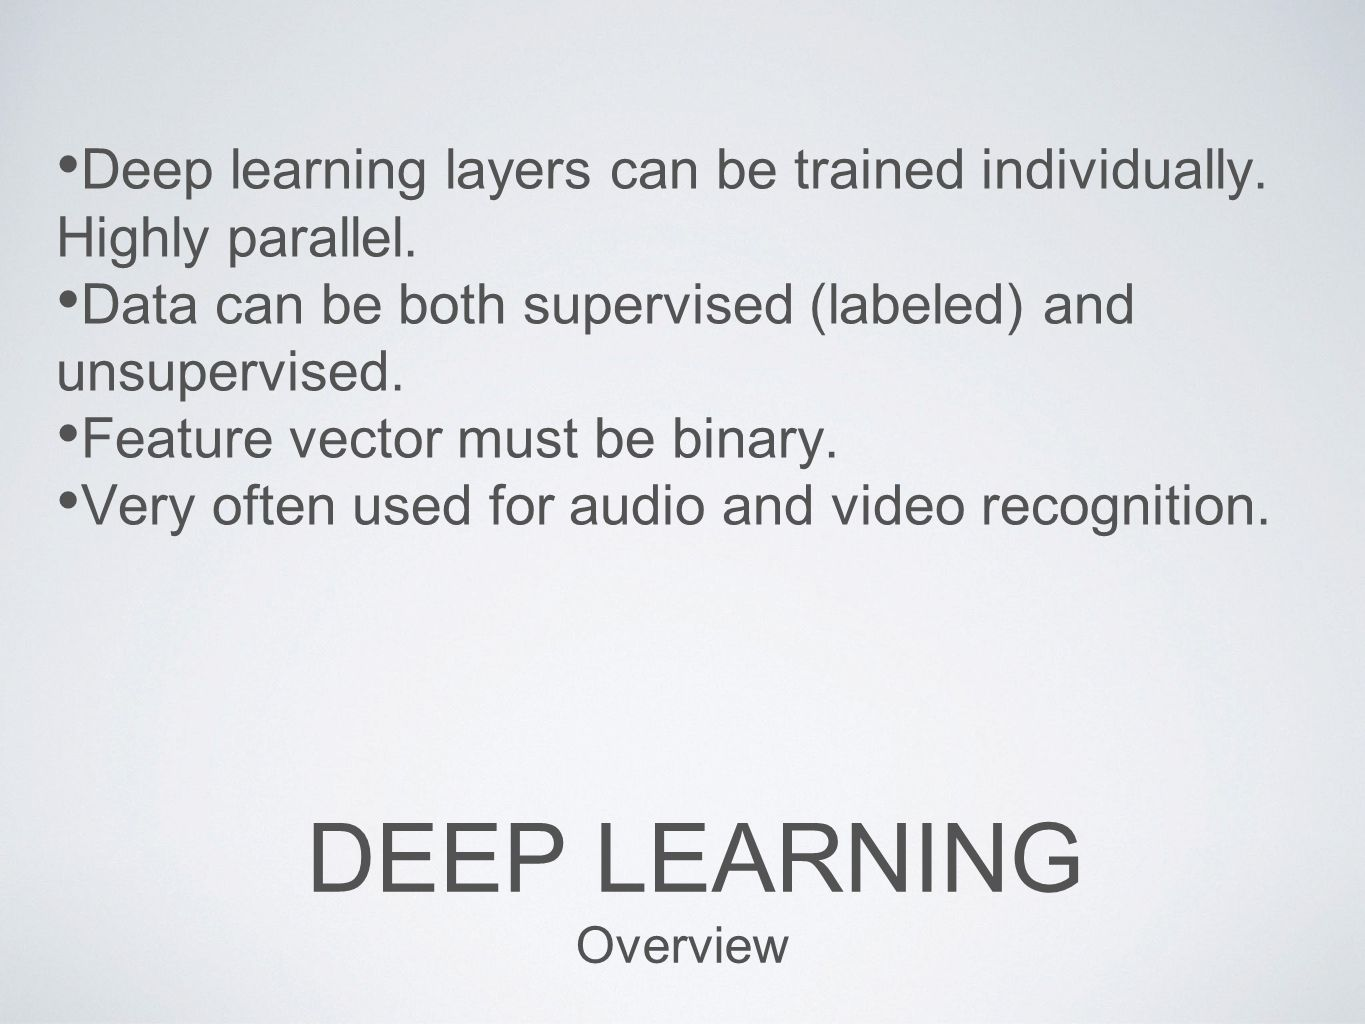 Deep learning layers can be trained individually. Highly parallel.